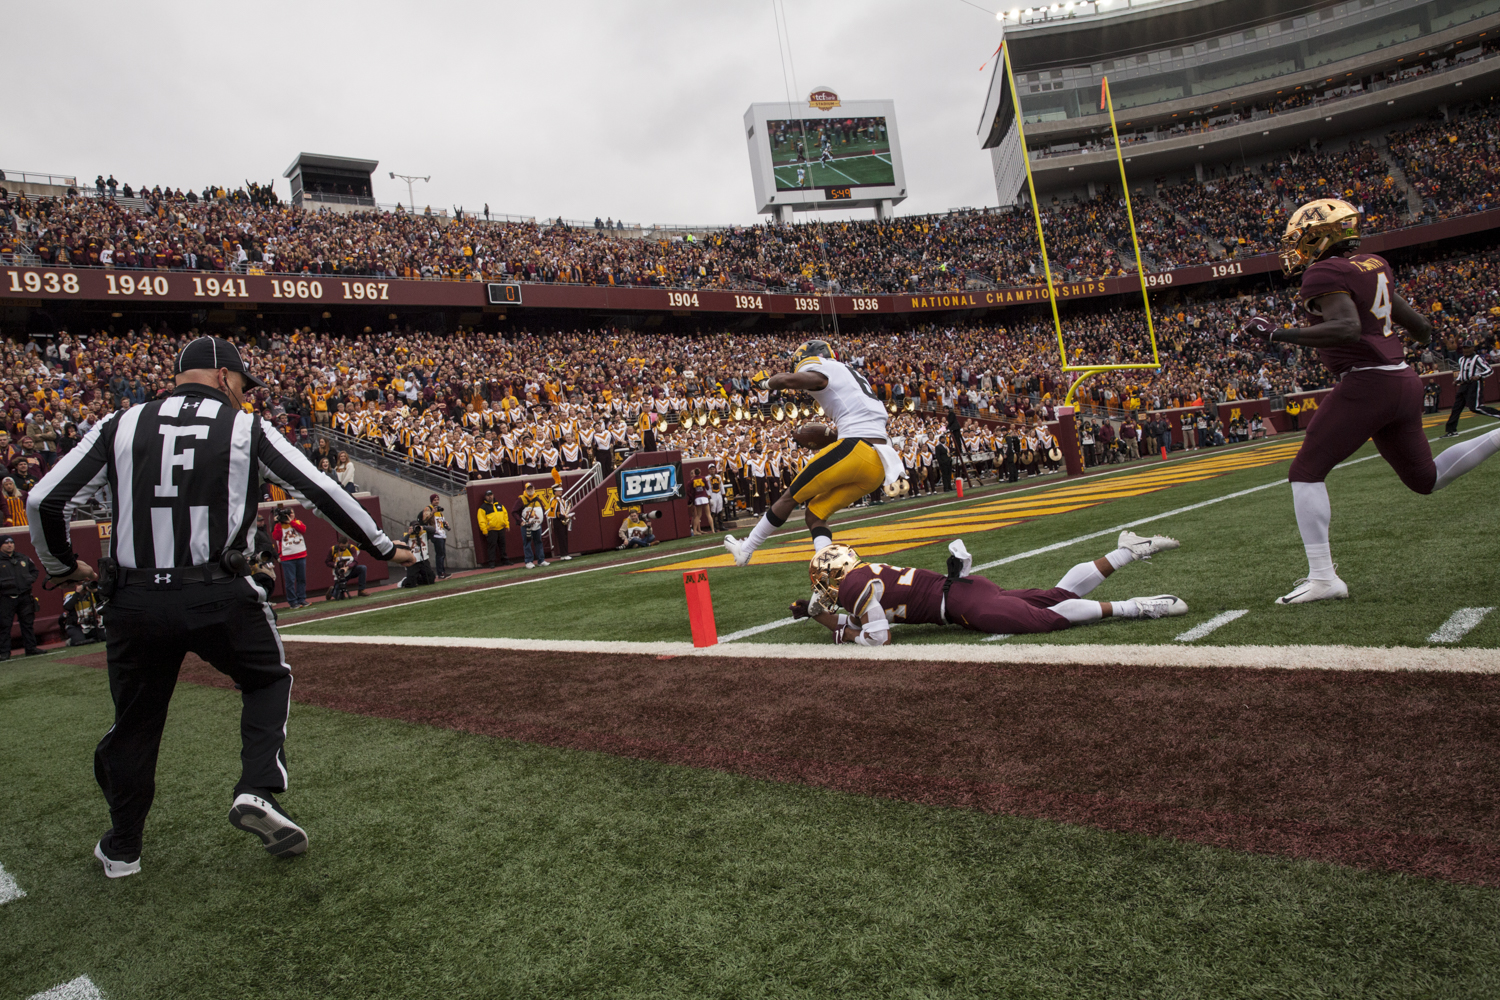 Iowa+wide+receiver+Ihmir+Smith-Marsette+scores+a+touchdown+during+Iowa%27s+game+against+Minnesota+at+TCF+Bank+Stadium+on+Saturday%2C+October+6%2C+2018.+The+Hawkeyes+defeated+the+Golden+Gophers+48-31.